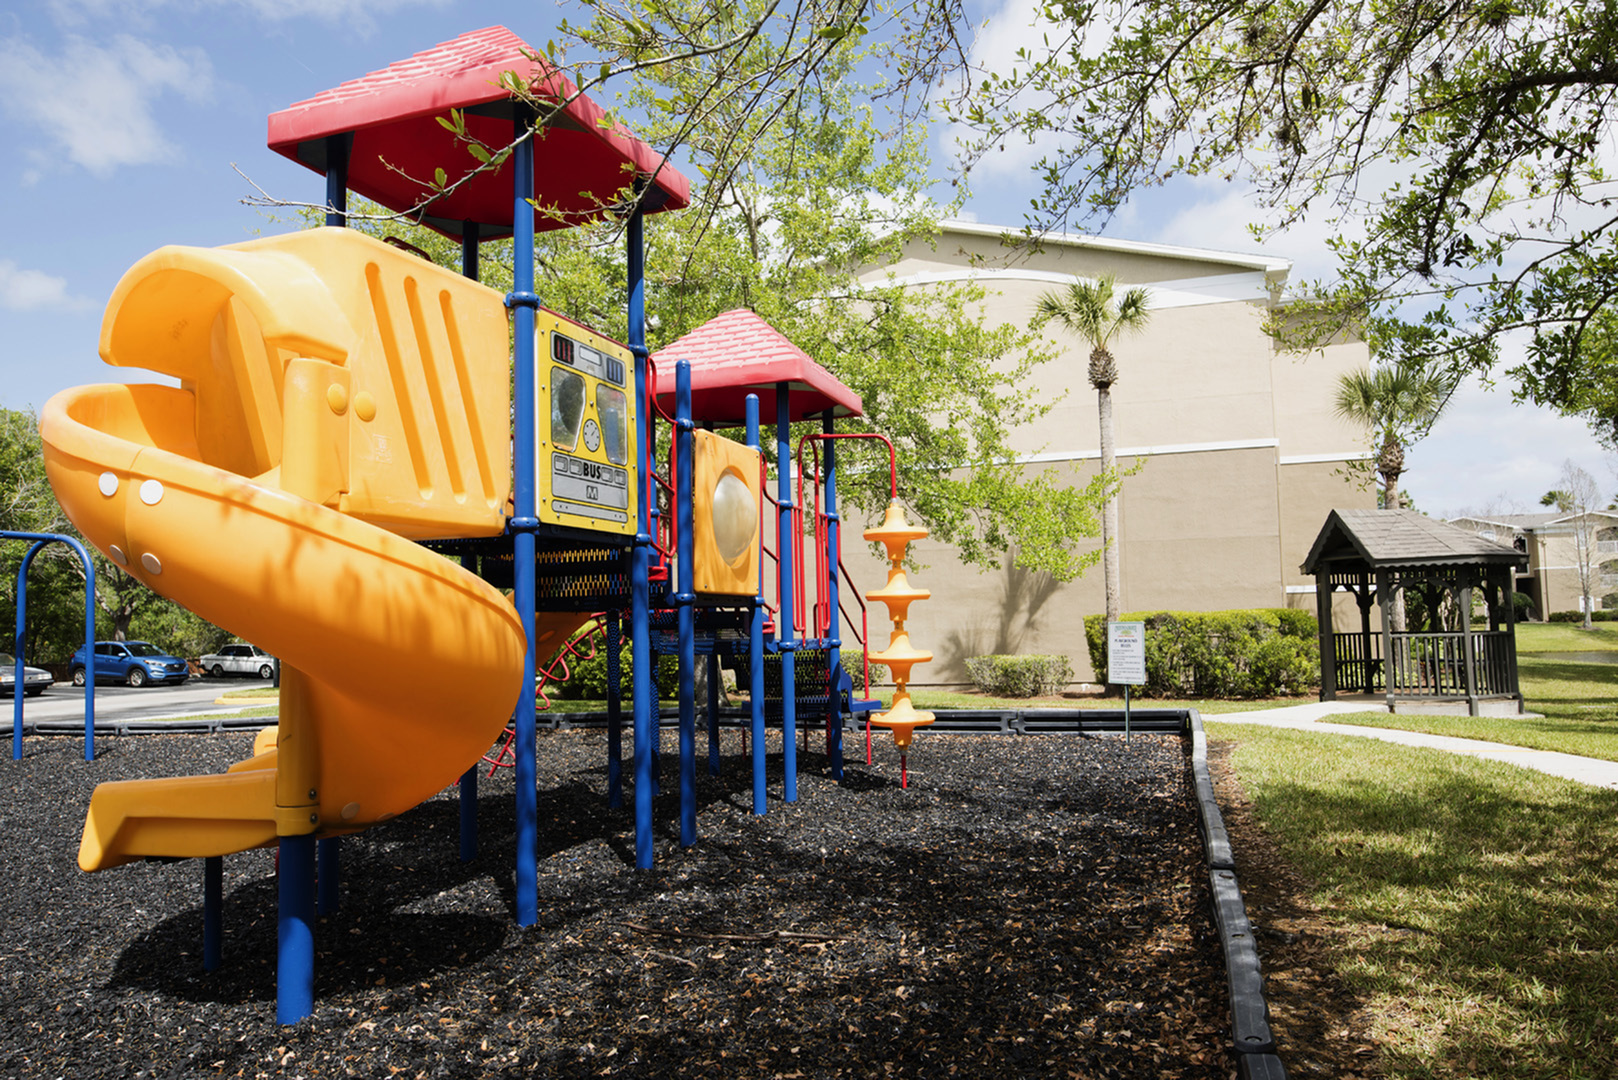 Children\'s playground surrounded by mulch and trees.